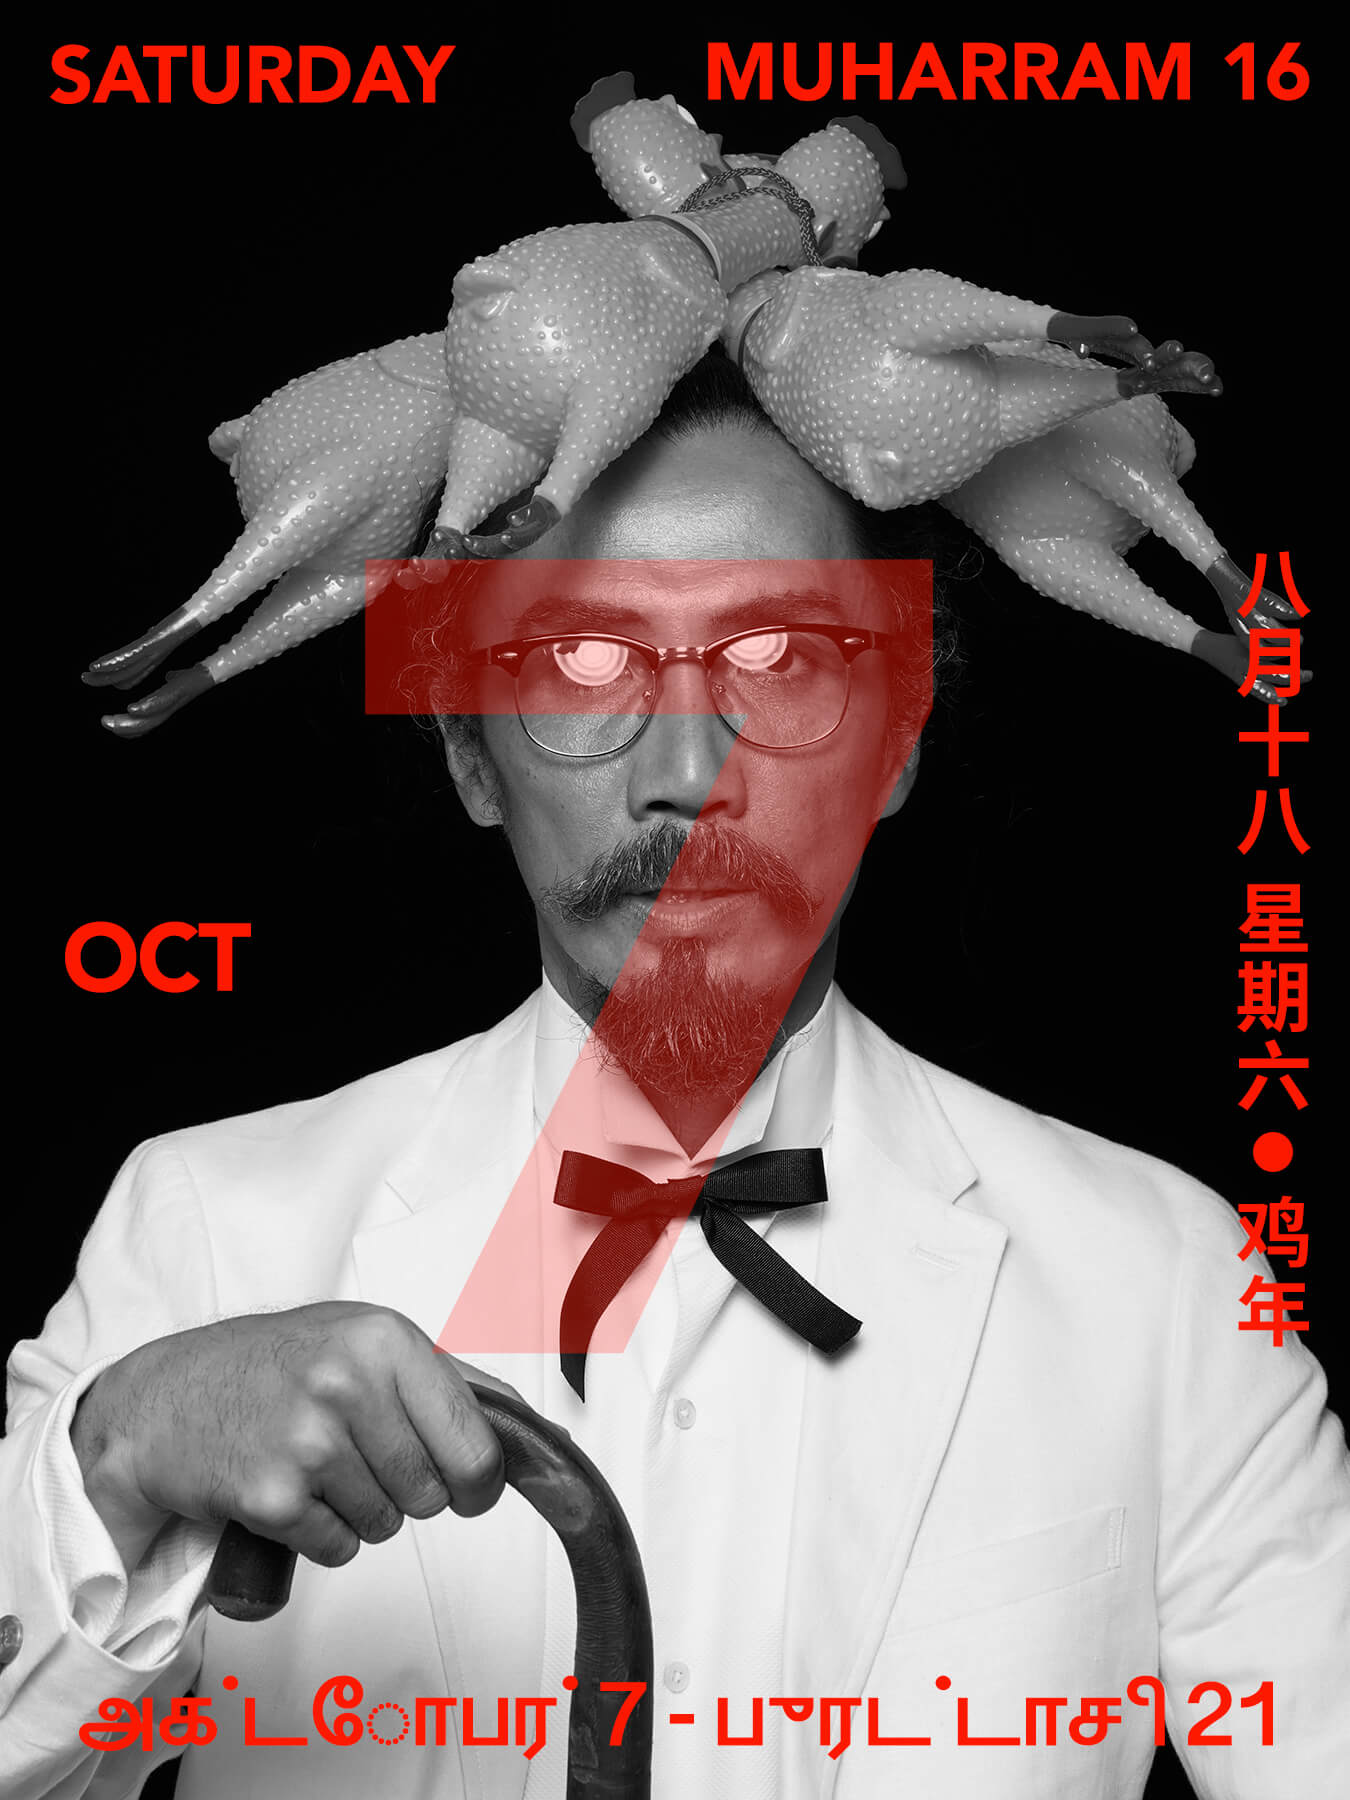 7 Oct 2017 Kid Fattening Centre: Derong is photographed as Colonel Sanders